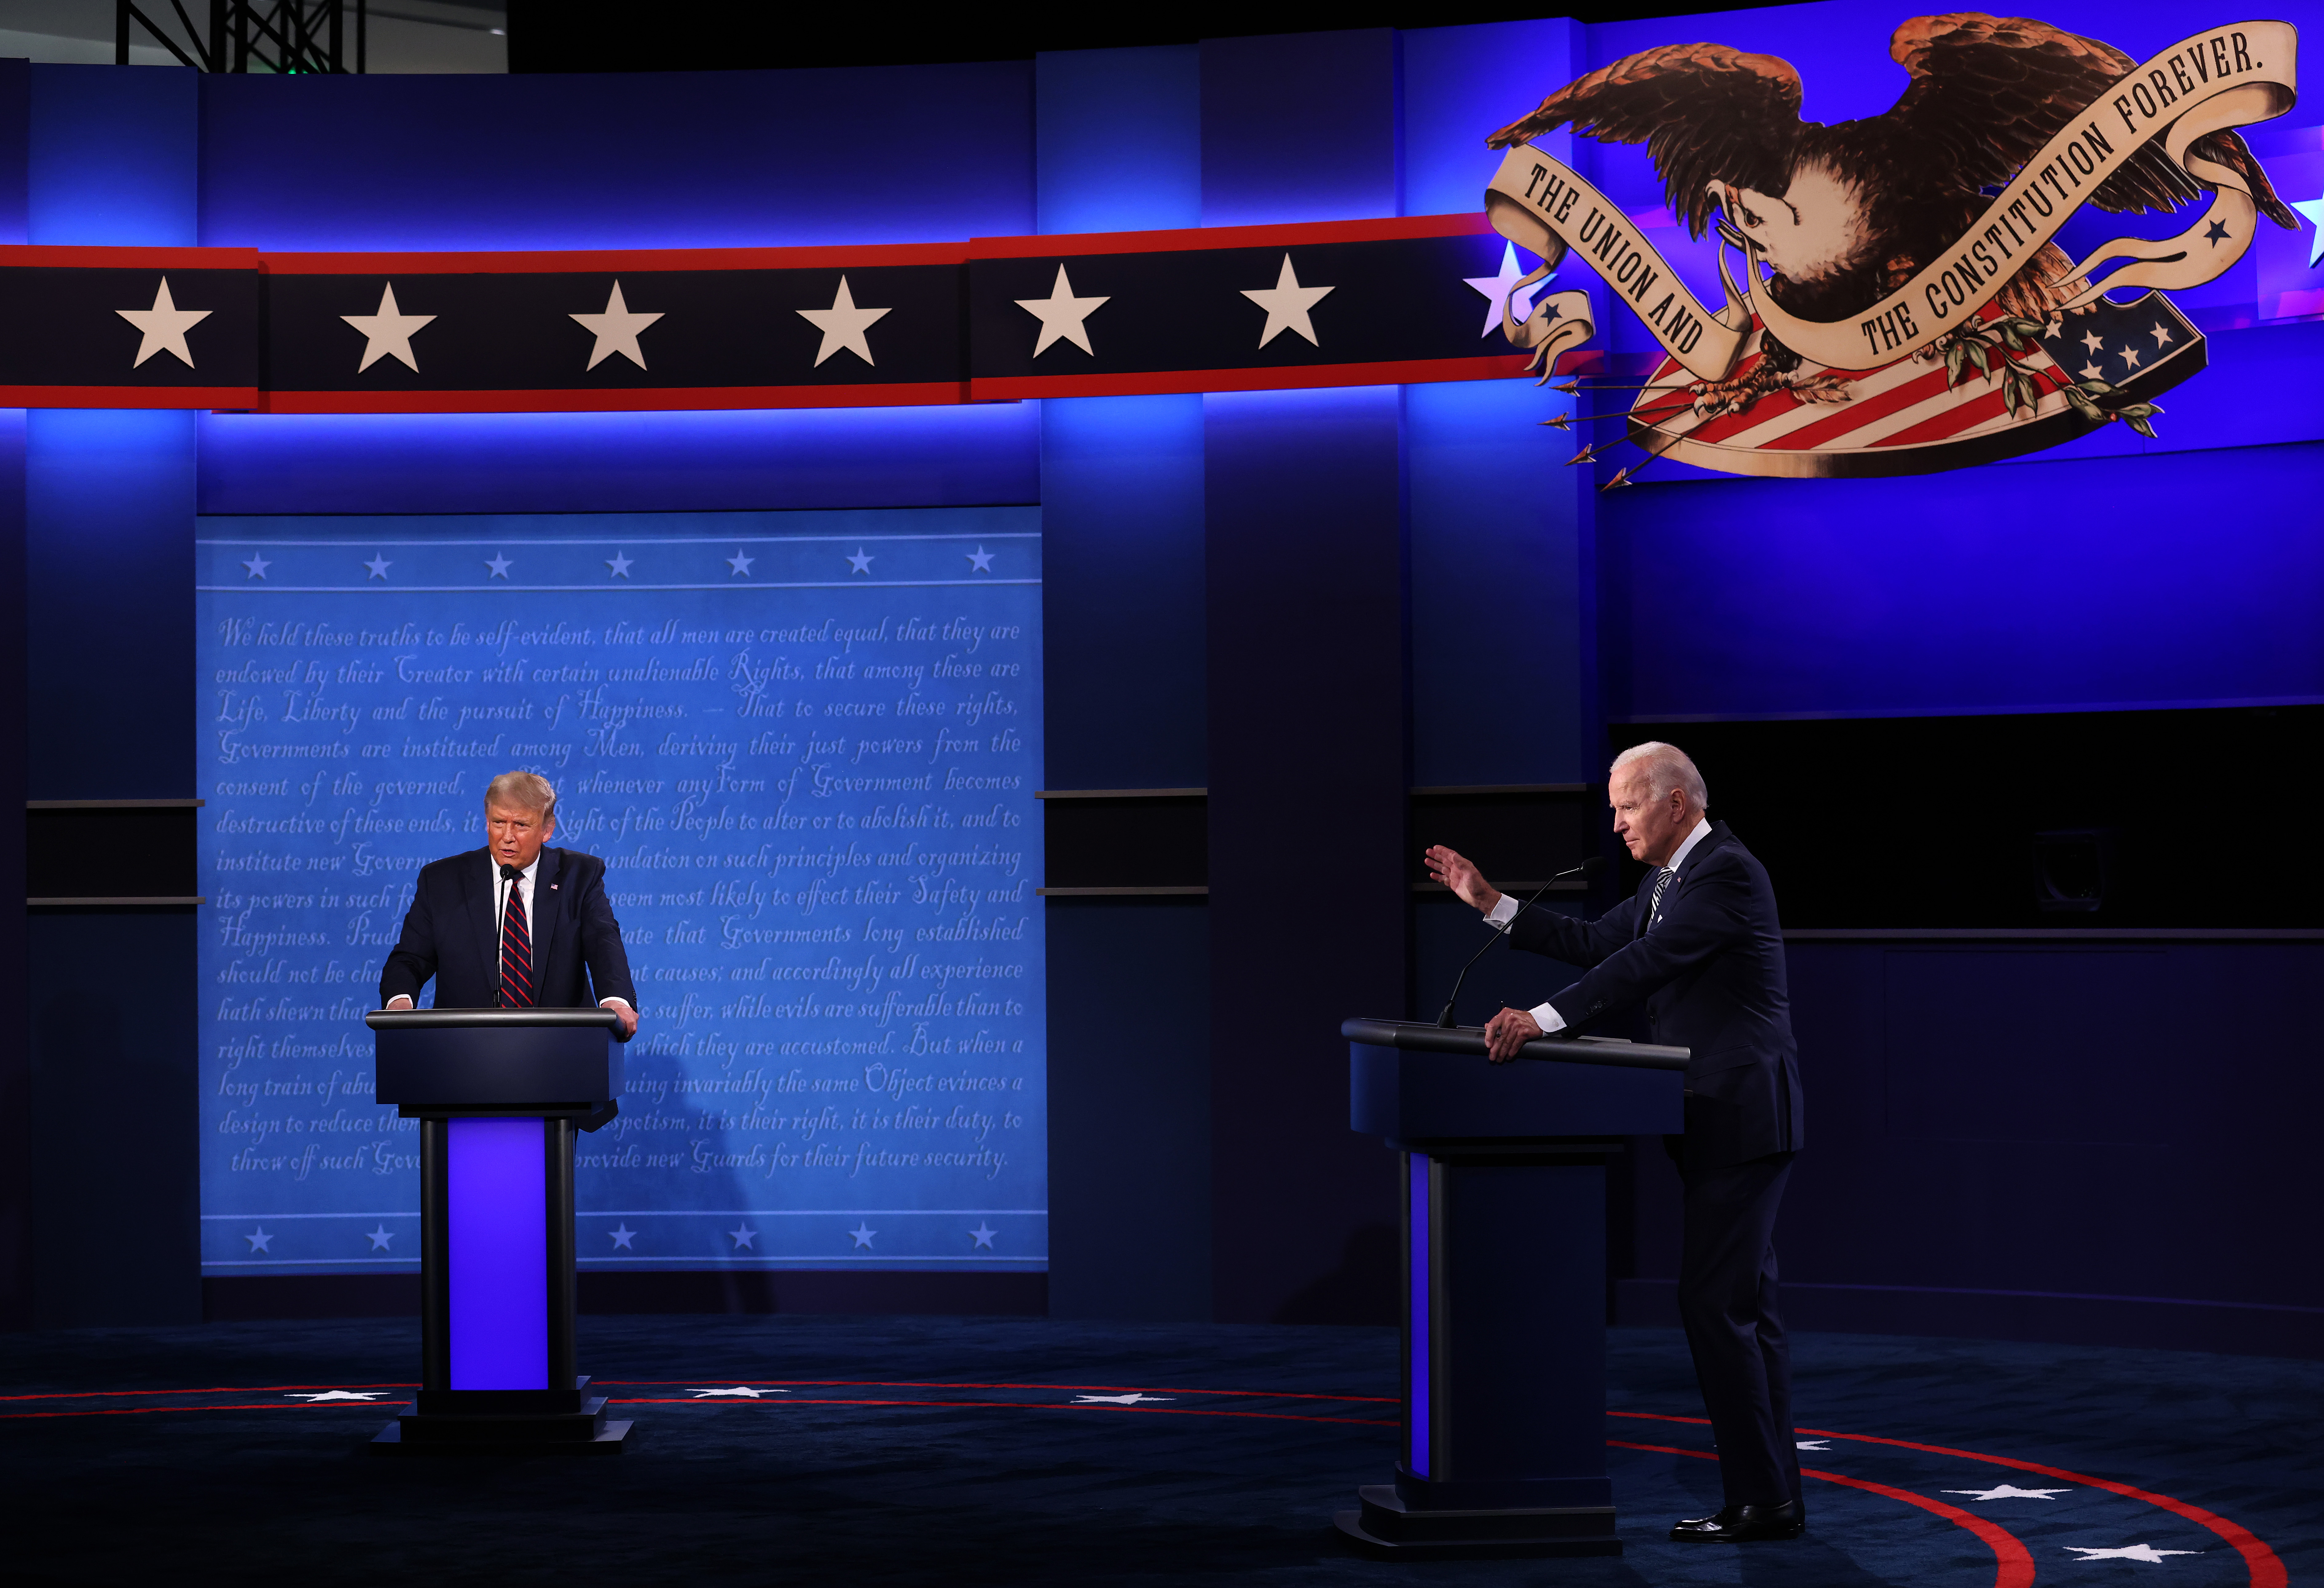 U.S. President Donald Trump and Democratic presidential nominee Joe Biden participate in the first presidential debate on September 29, 2020 in Cleveland, Ohio.